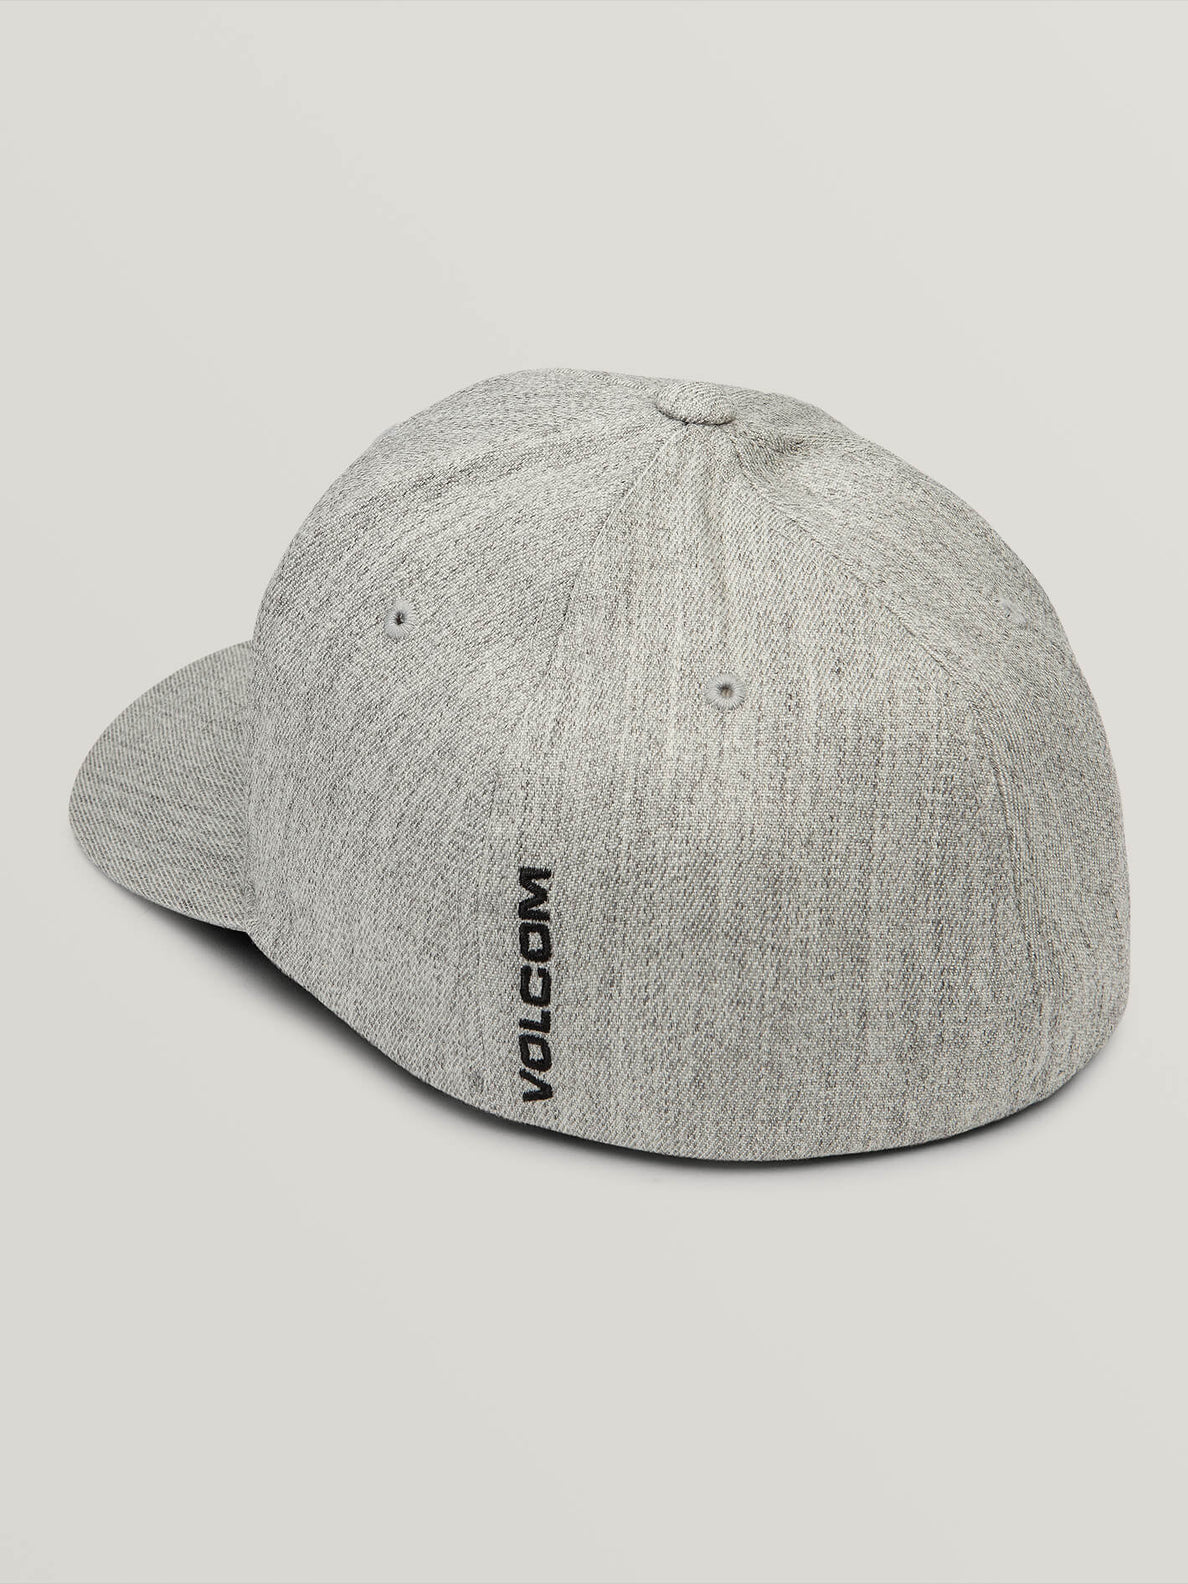 Full Stone Heather Xfit Hat - Grey Vintage